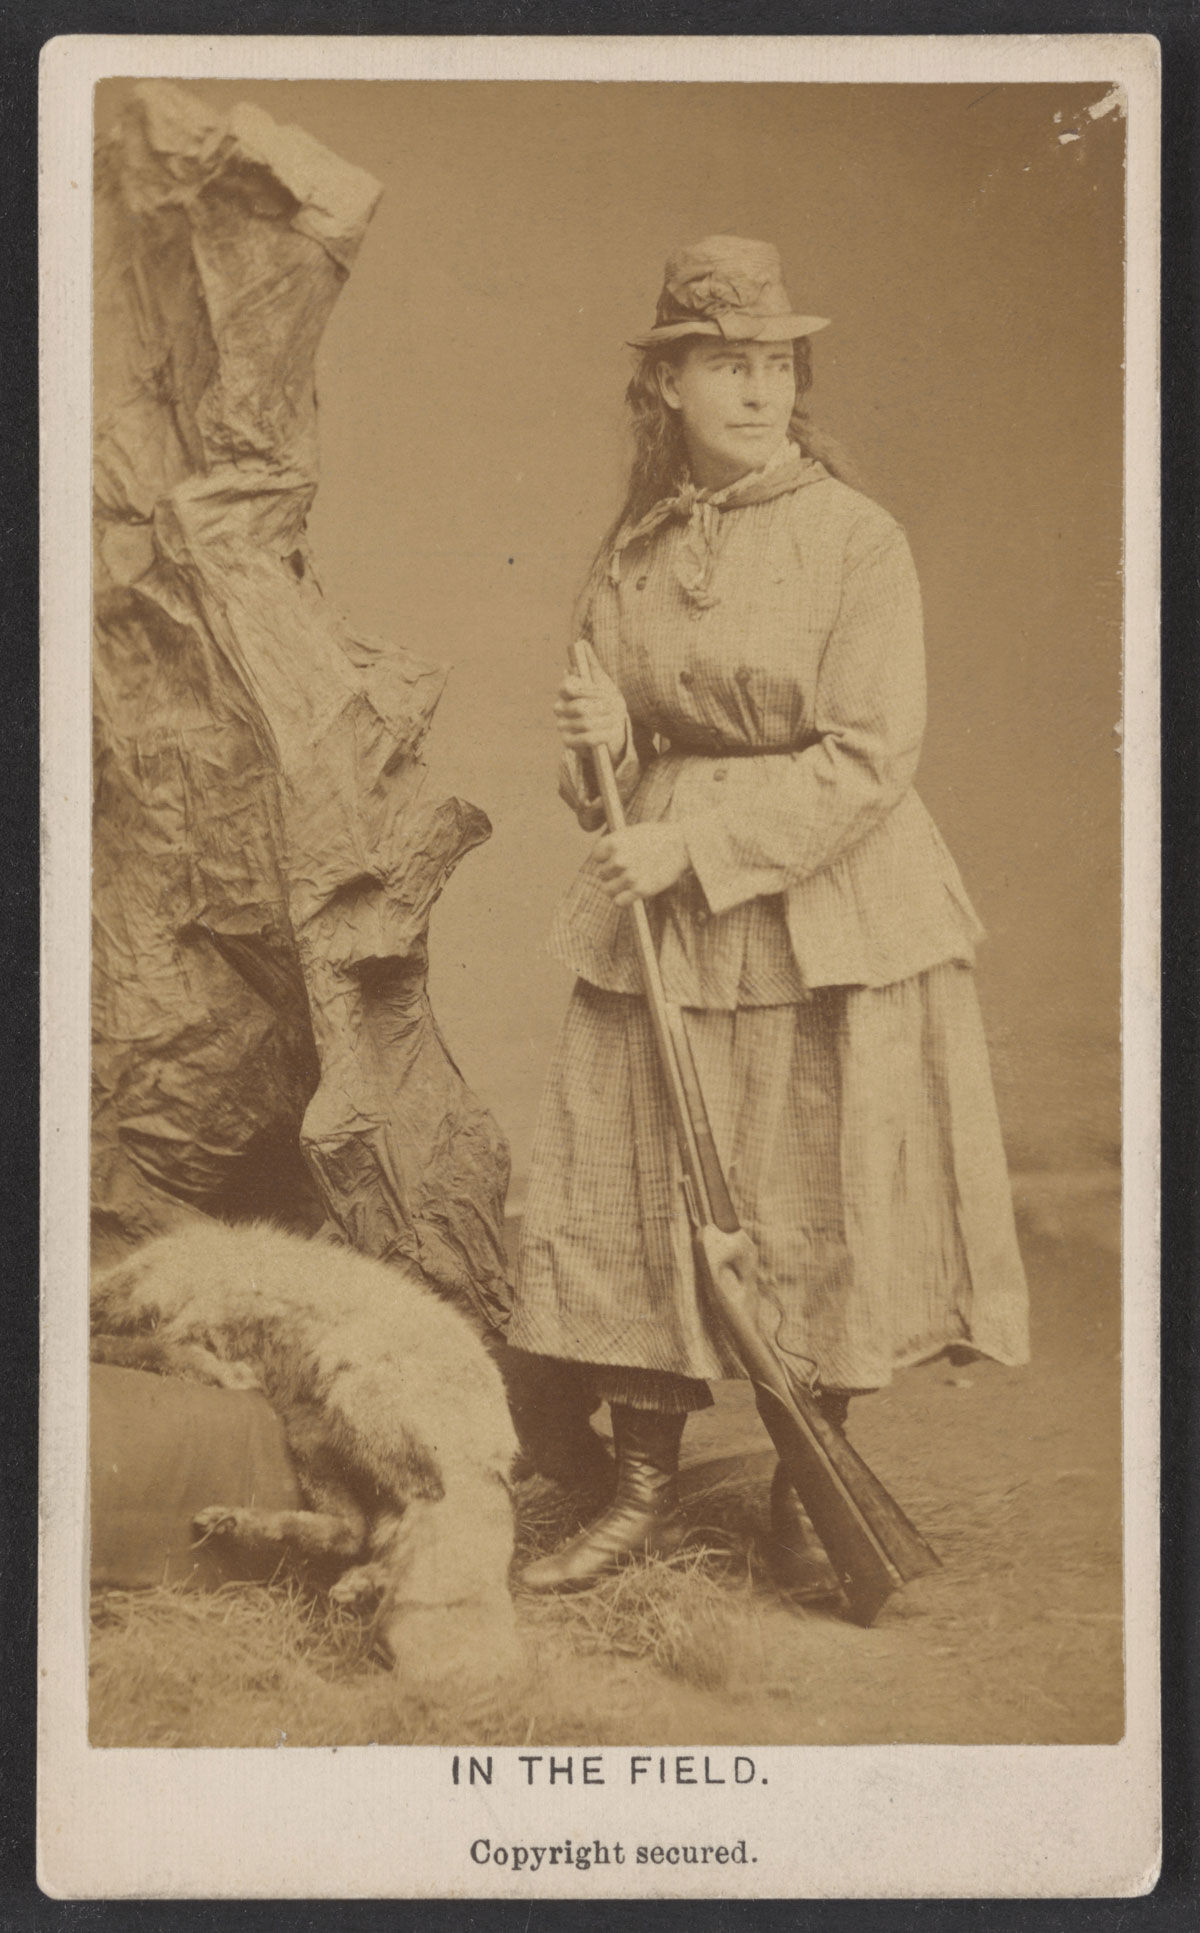 Images of Martha Maxwell in 1876. Via Wikimedia Commons.